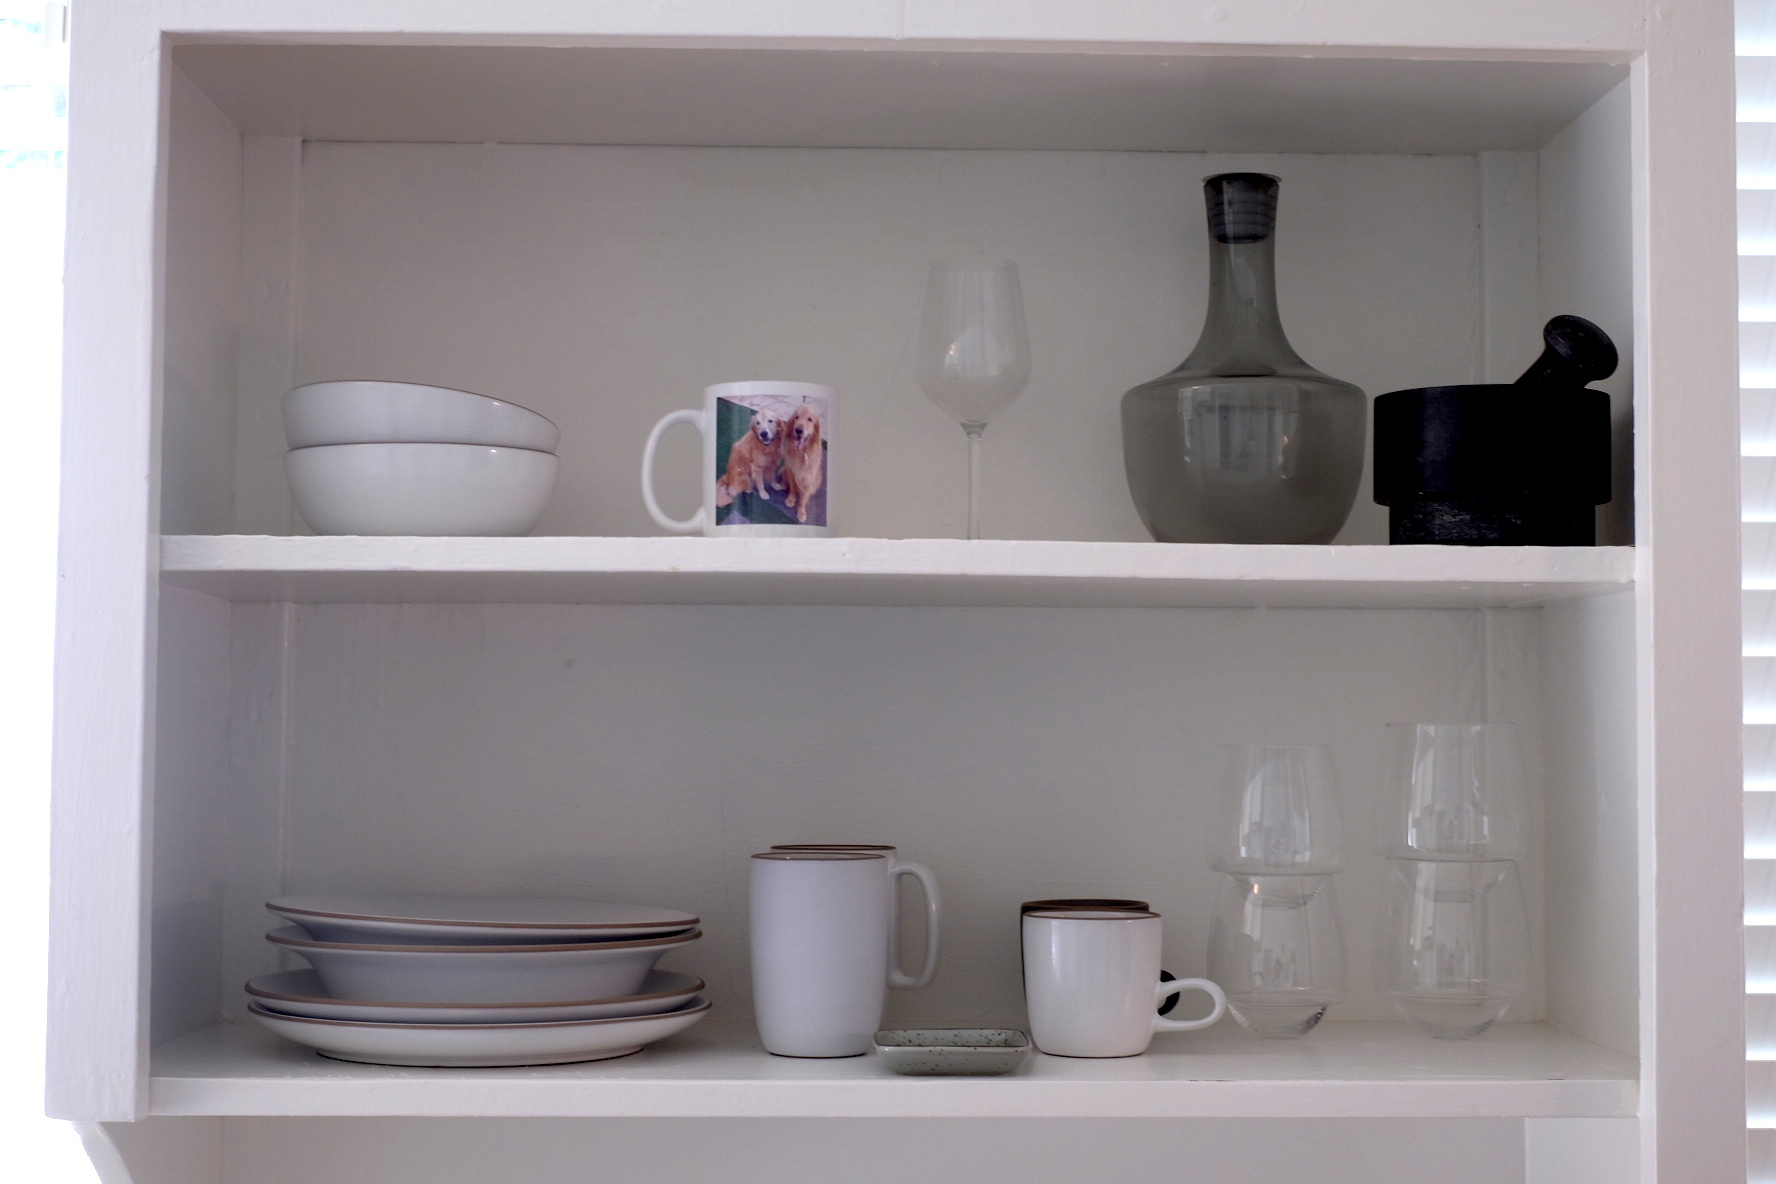 My tableware shelf: Heath plates and bowls, SDS Saturn Glasses (red wine and white wine), an Ikea wine glass I use as a tea light holder, a water pitcher (also Ikea), a mortar and pestle, a sauce dish given to me by my friend Benny, and a mug with a picture of my dogs